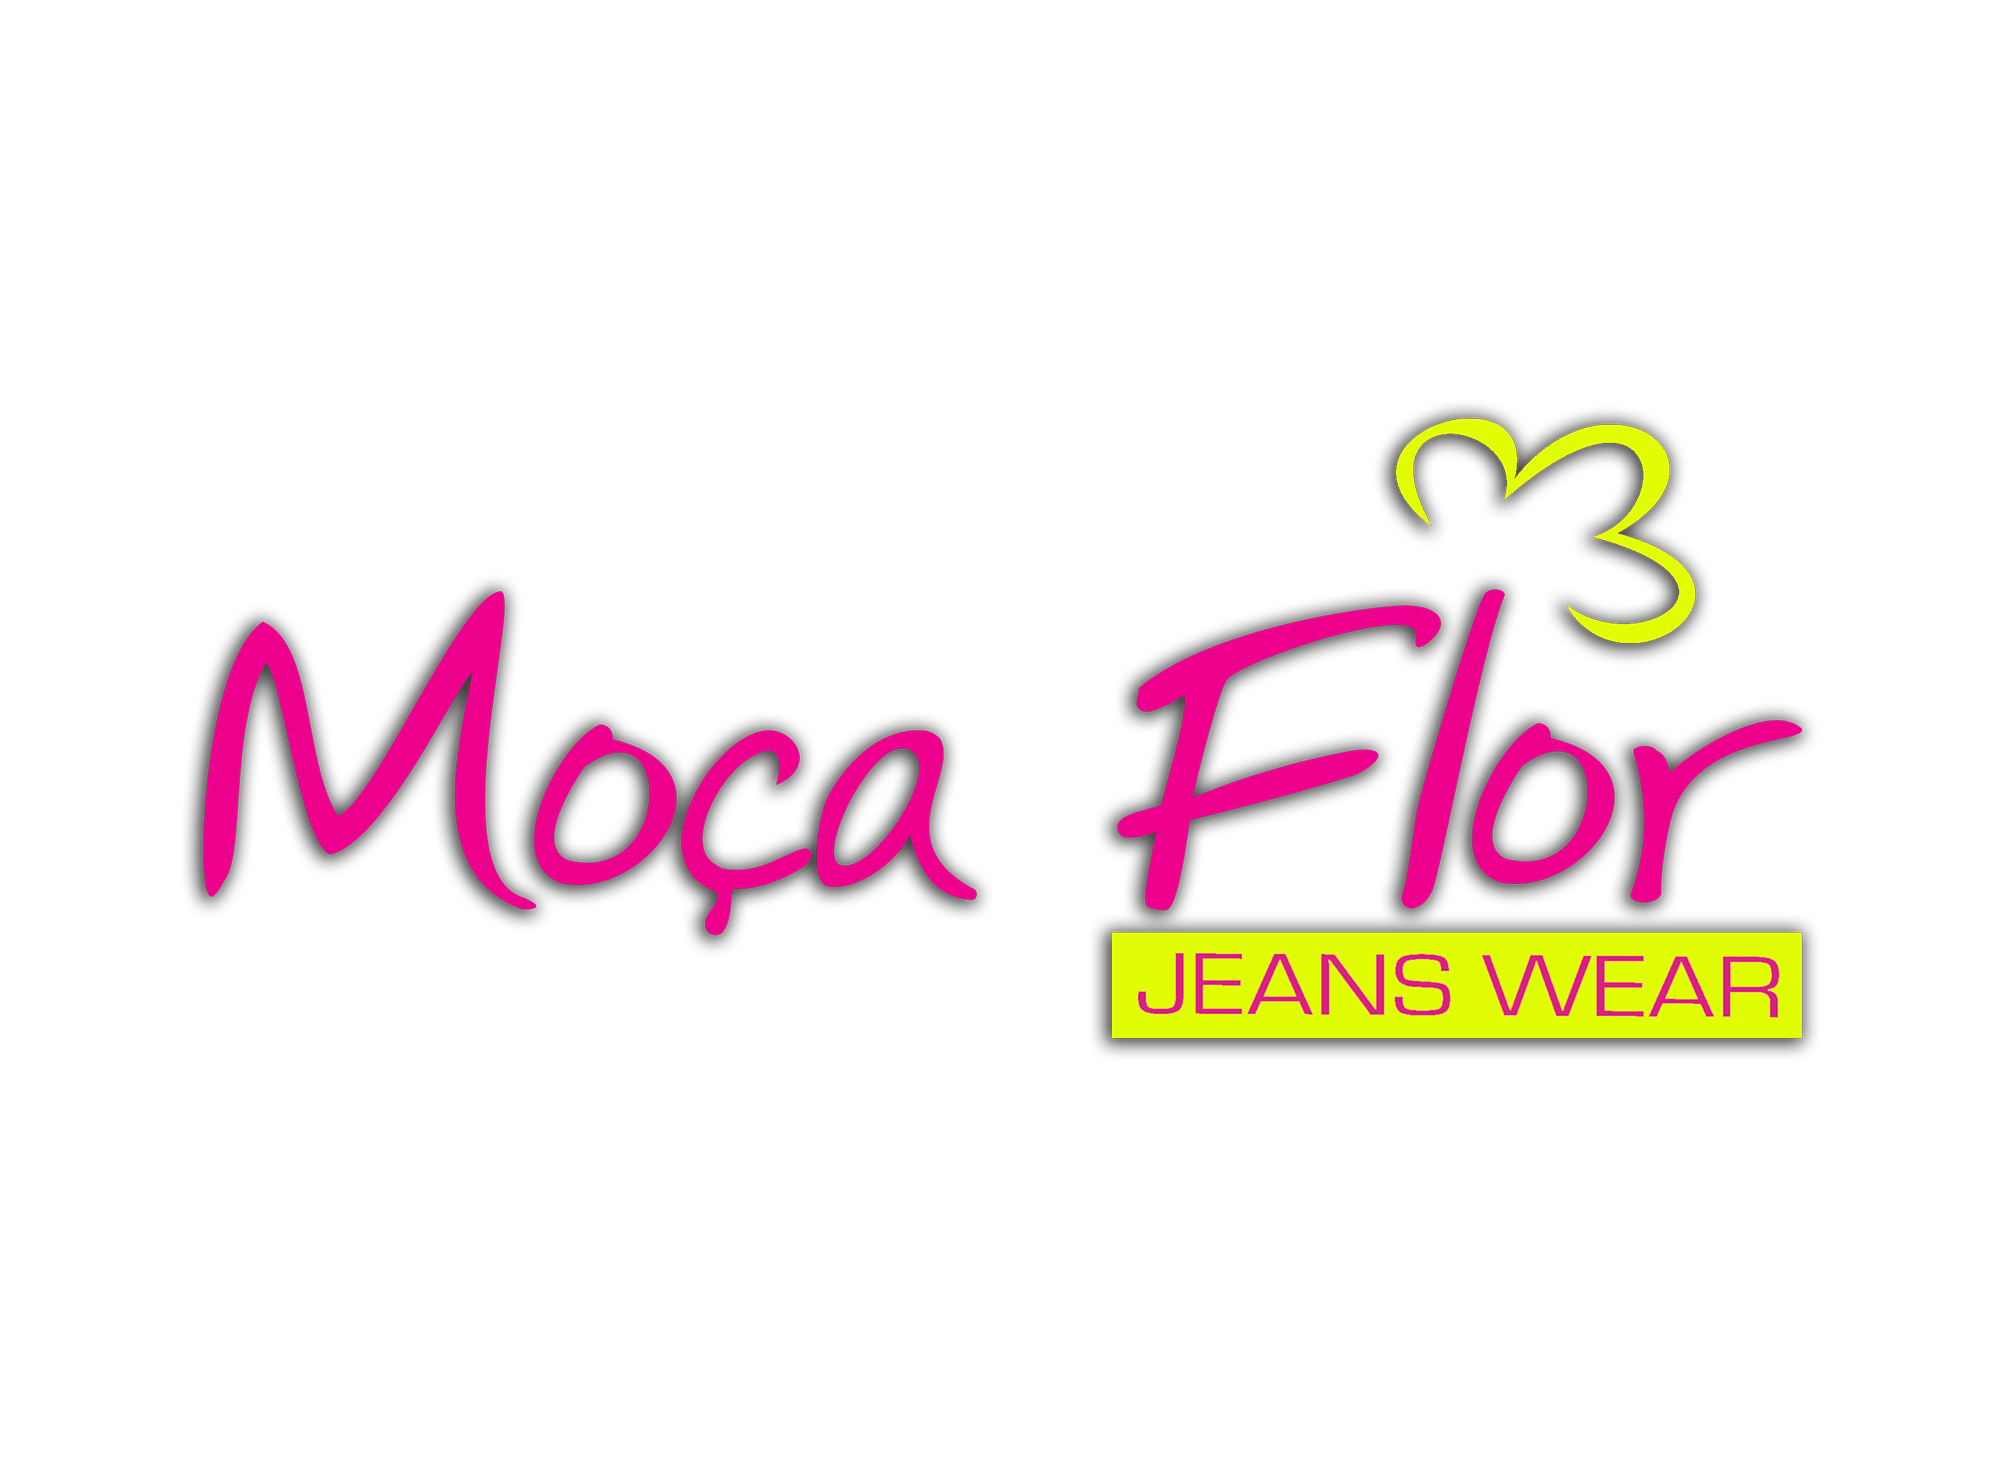 moca-flor-jeanswear-moda-feminina-clientes-agencia-diretriz-digital-marketing-fortaleza